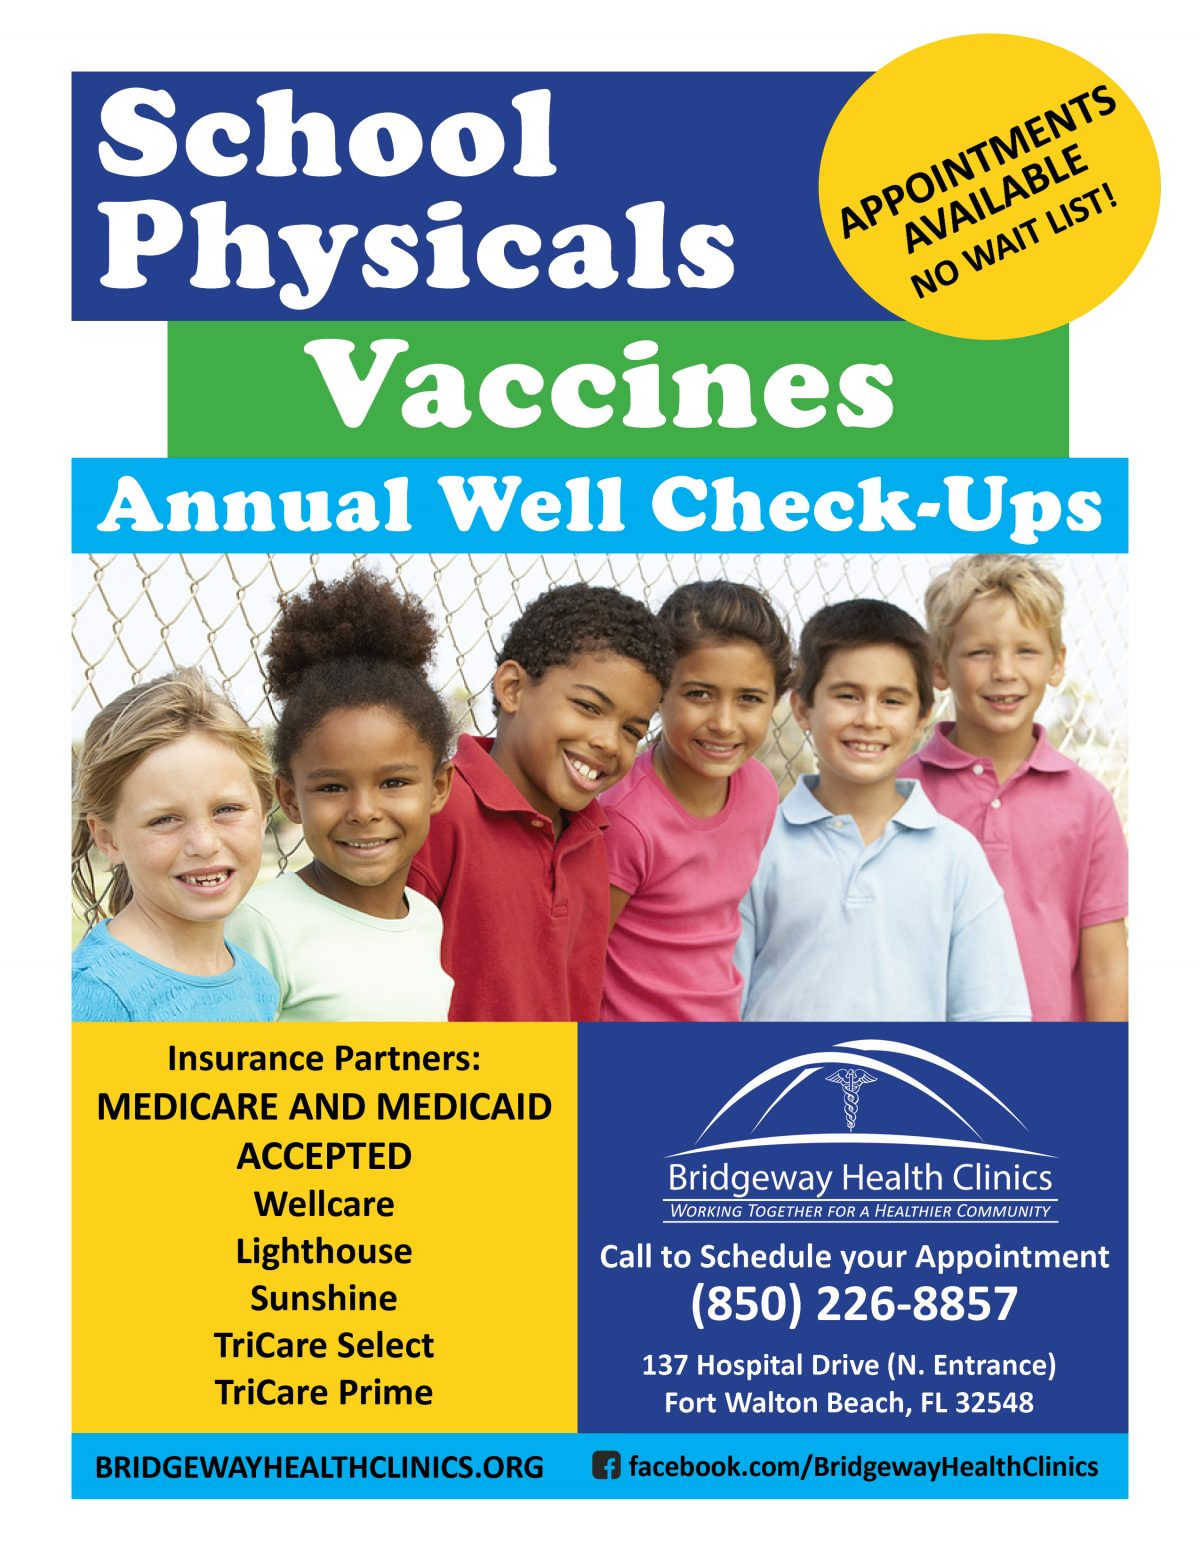 BHC-Children-Flyer-1200x1553.jpg